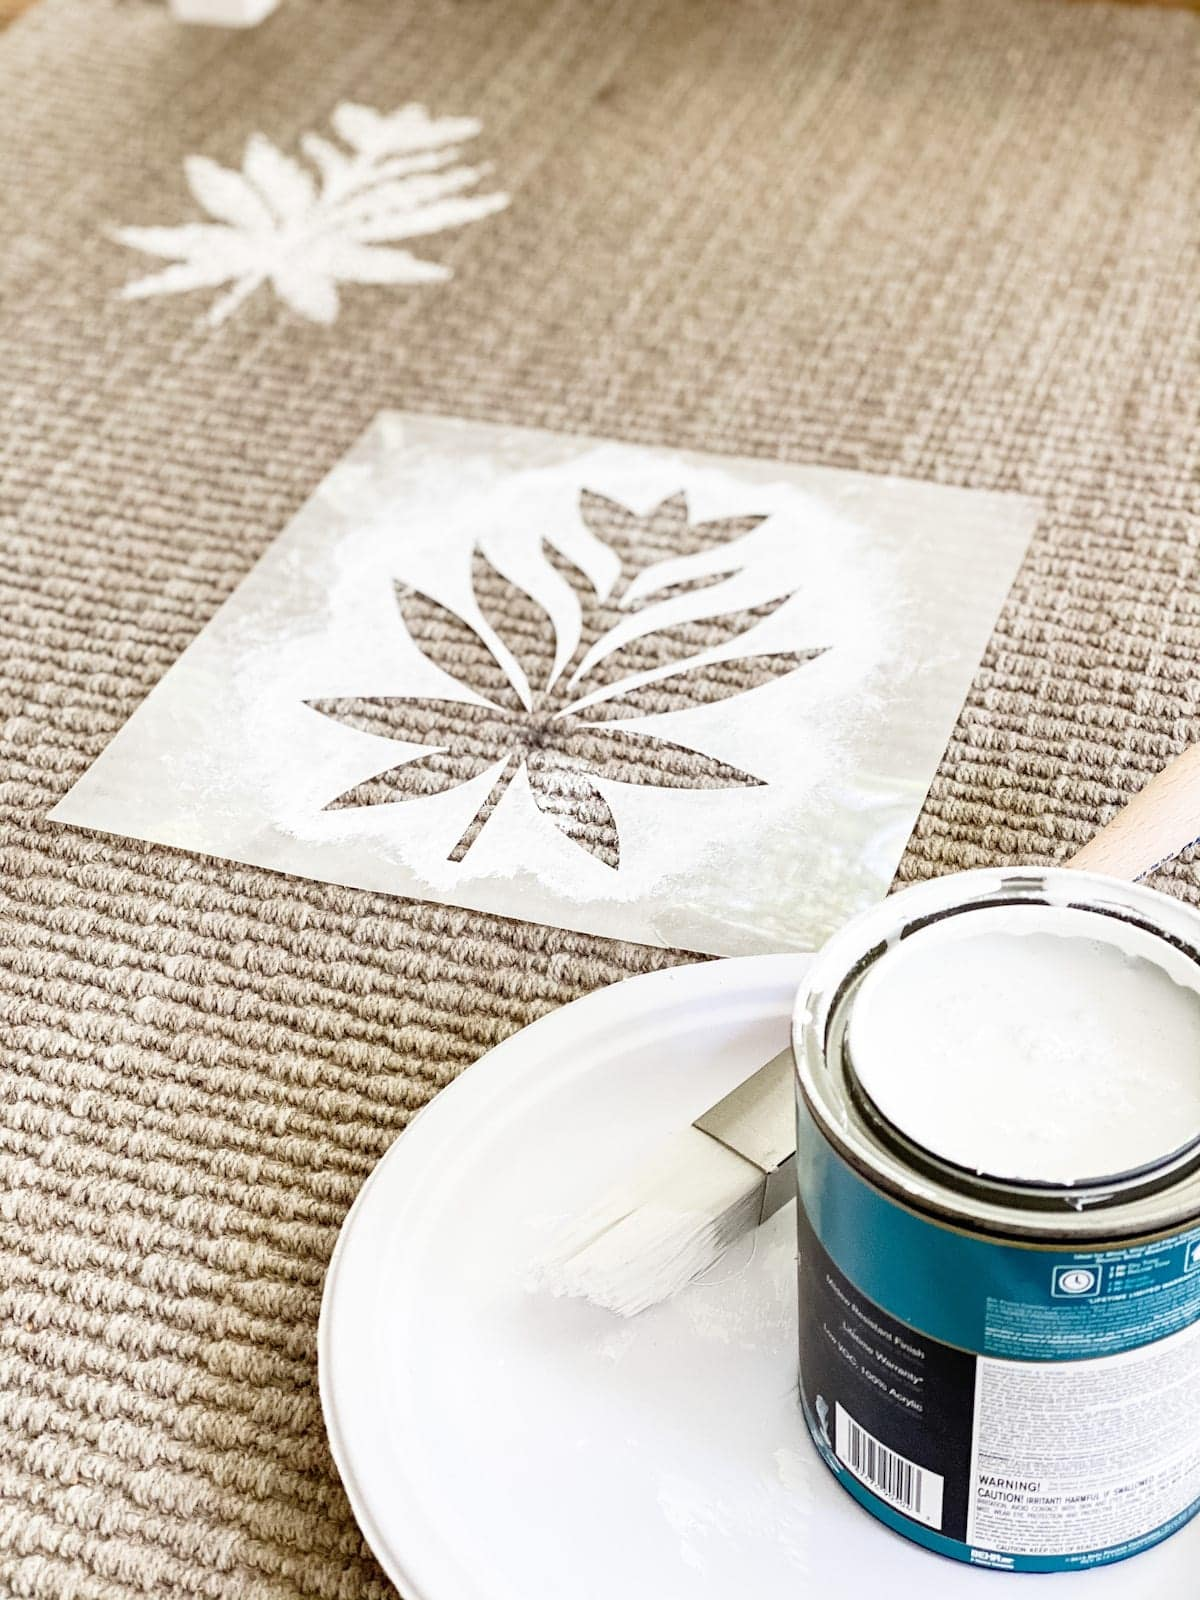 DIY floral block pattern on an outdoor rug